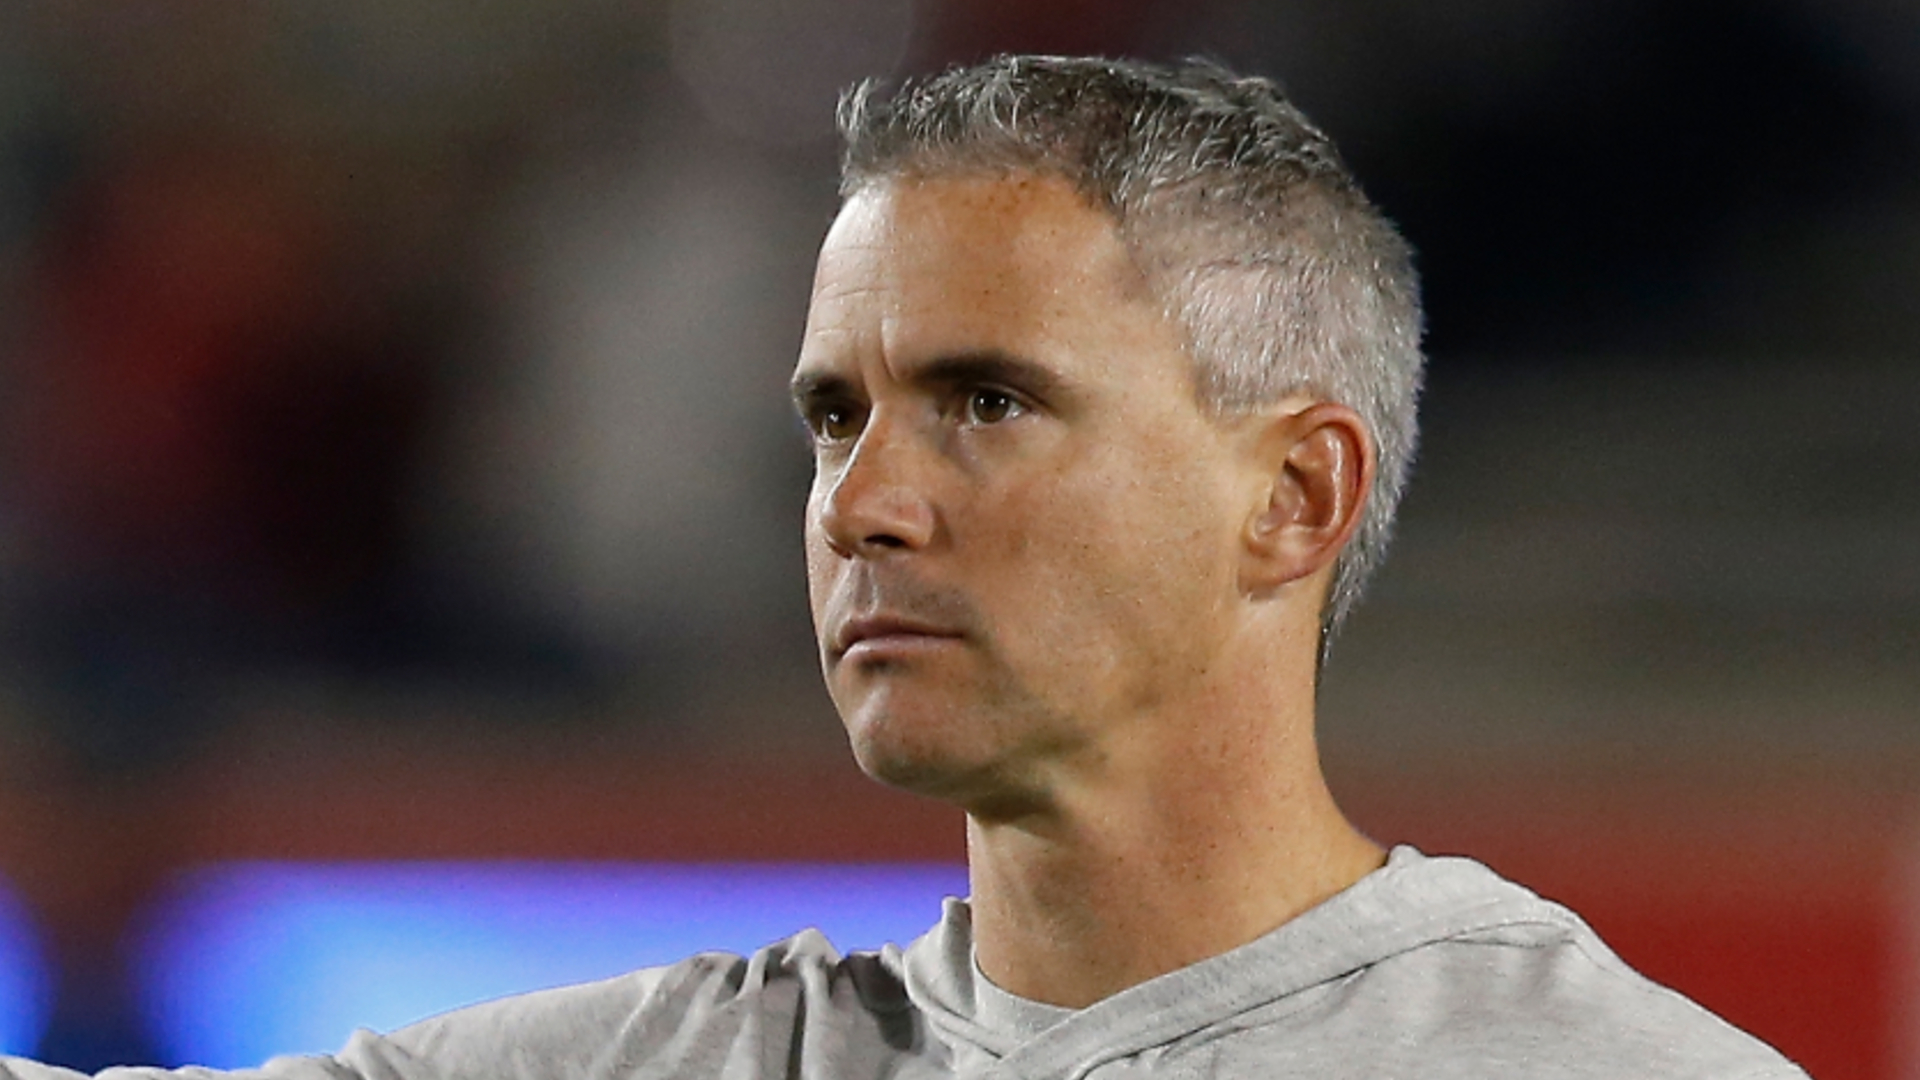 mike norvell 092920 getty